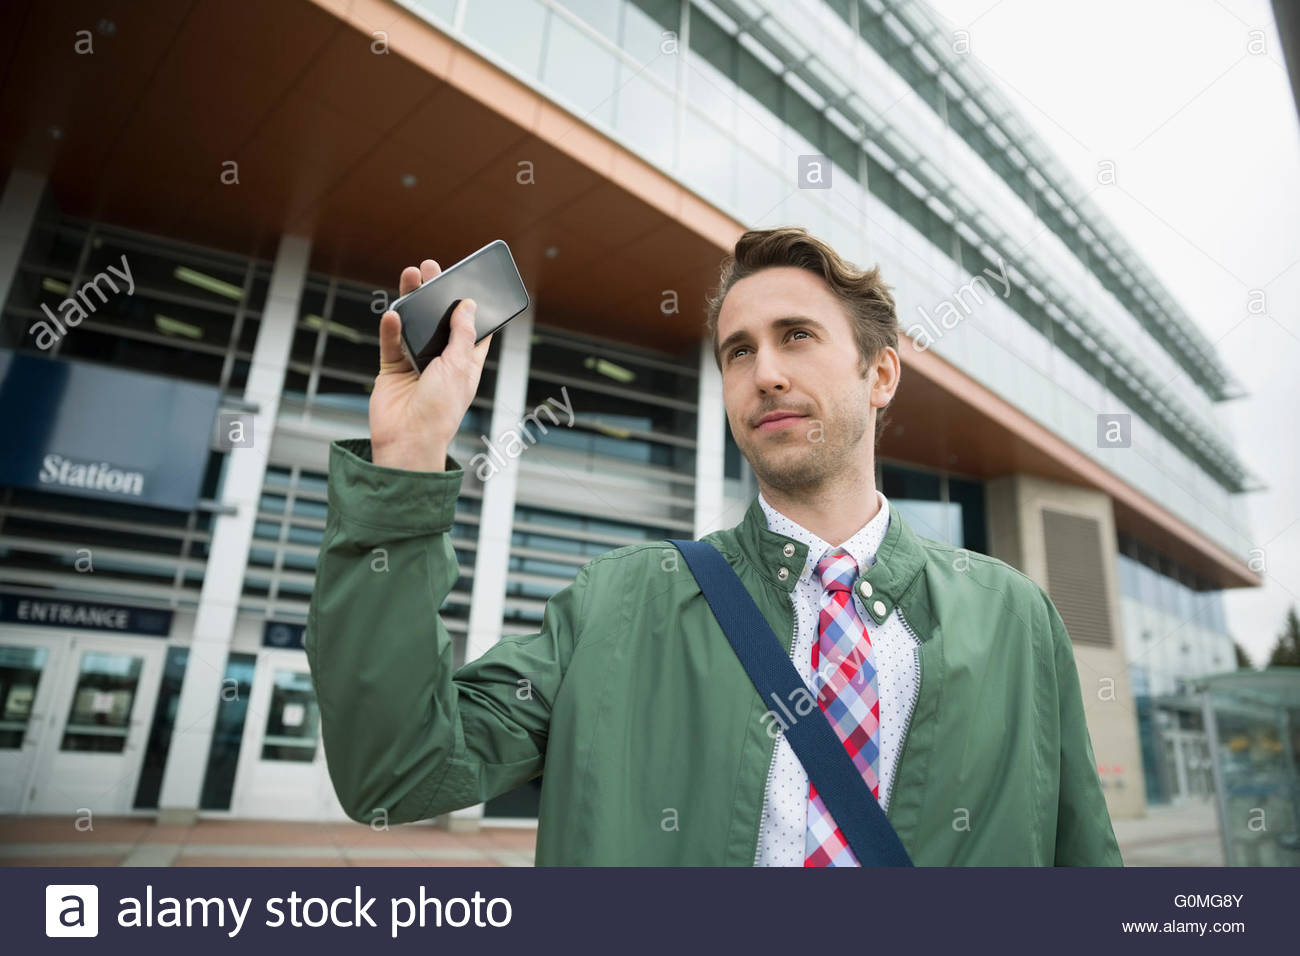 Businessman with cell phone waving outside train station - Stock Image